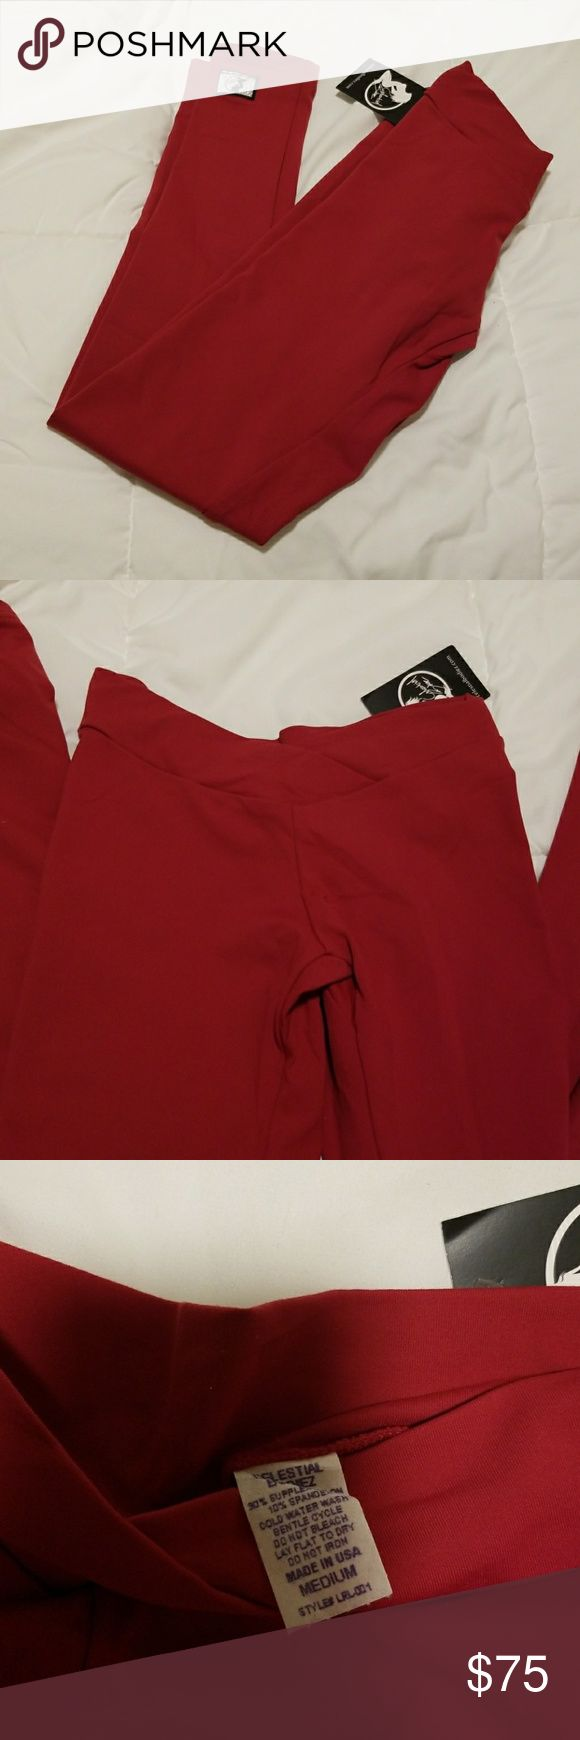 Celestial Bodiez leggings Super pretty deep red color, v cut full length scrunch butt leggings.  Brand new , tags ripped but will include . Purchased recently , selling because too big on me . Per size guide fits 4-8. Tag  gymshark  for exposure only! Celestial Bodiez Pants Leggings